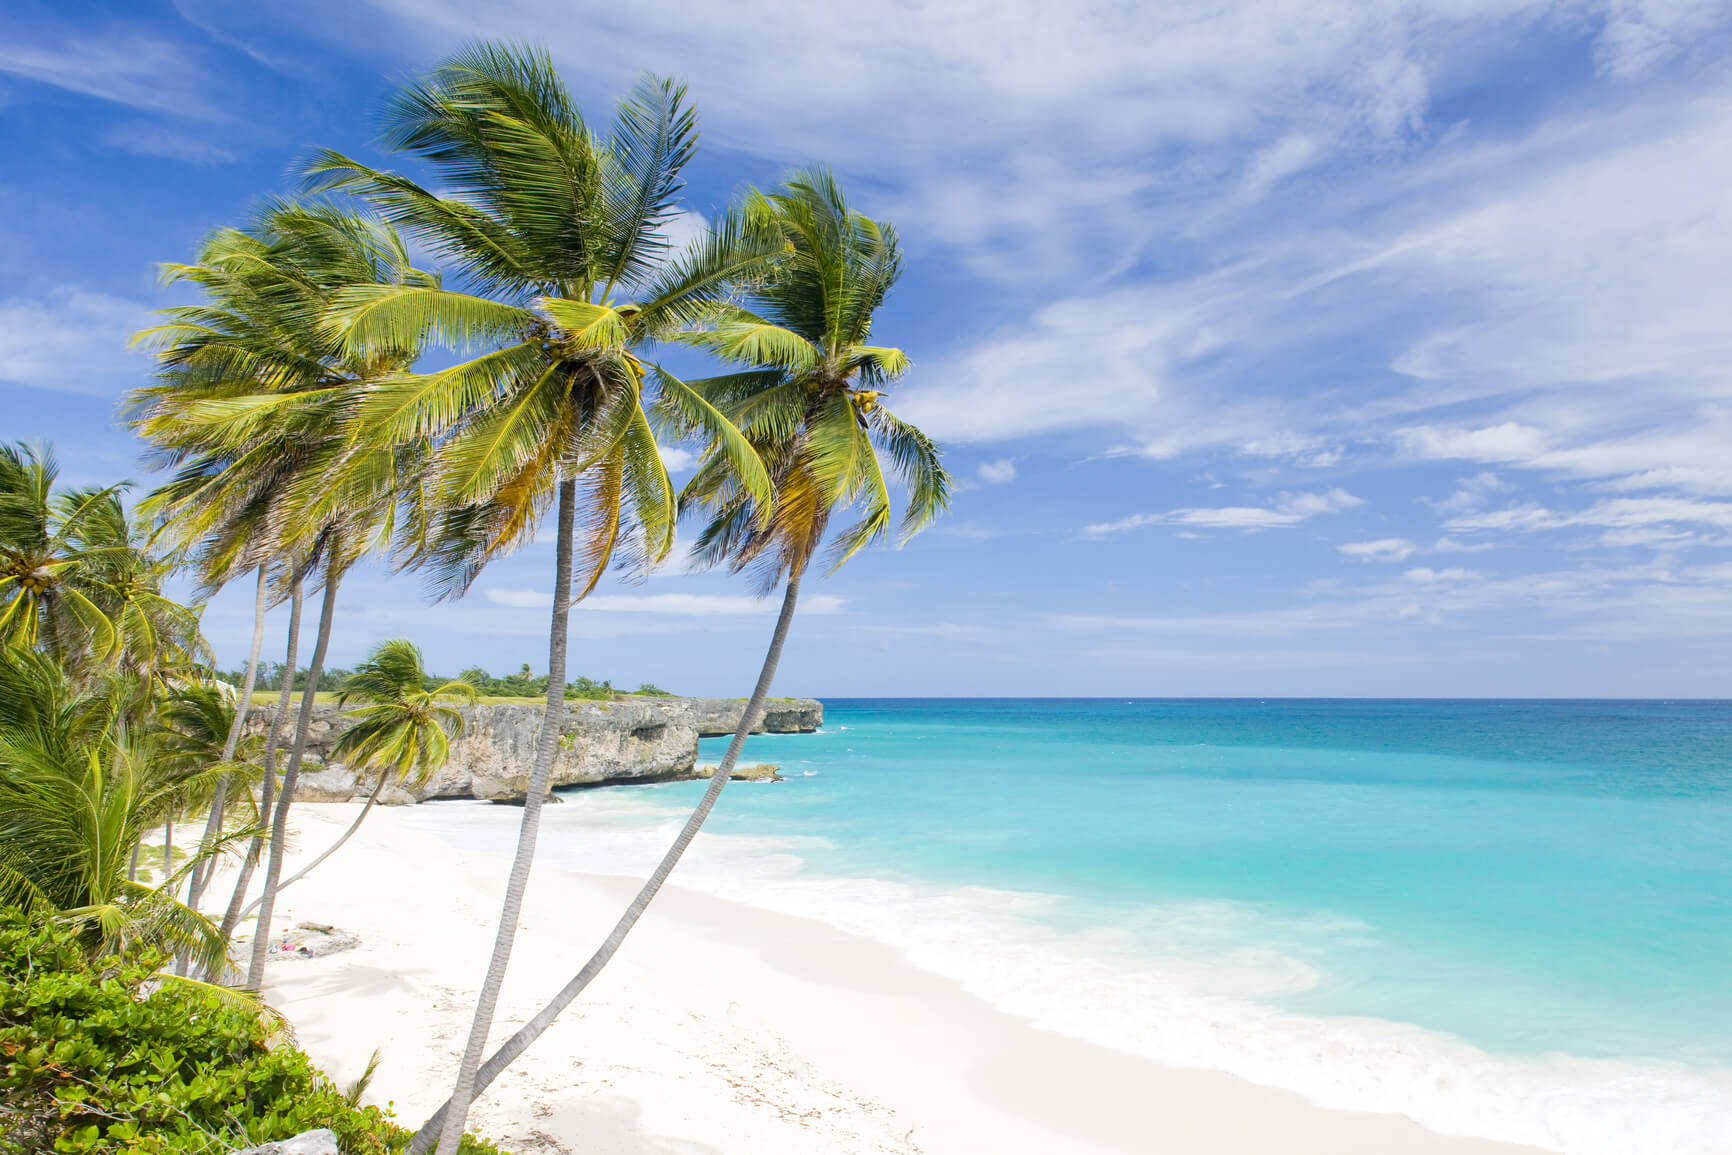 Non-stop from UK cities to Barbados from only £299 roundtrip